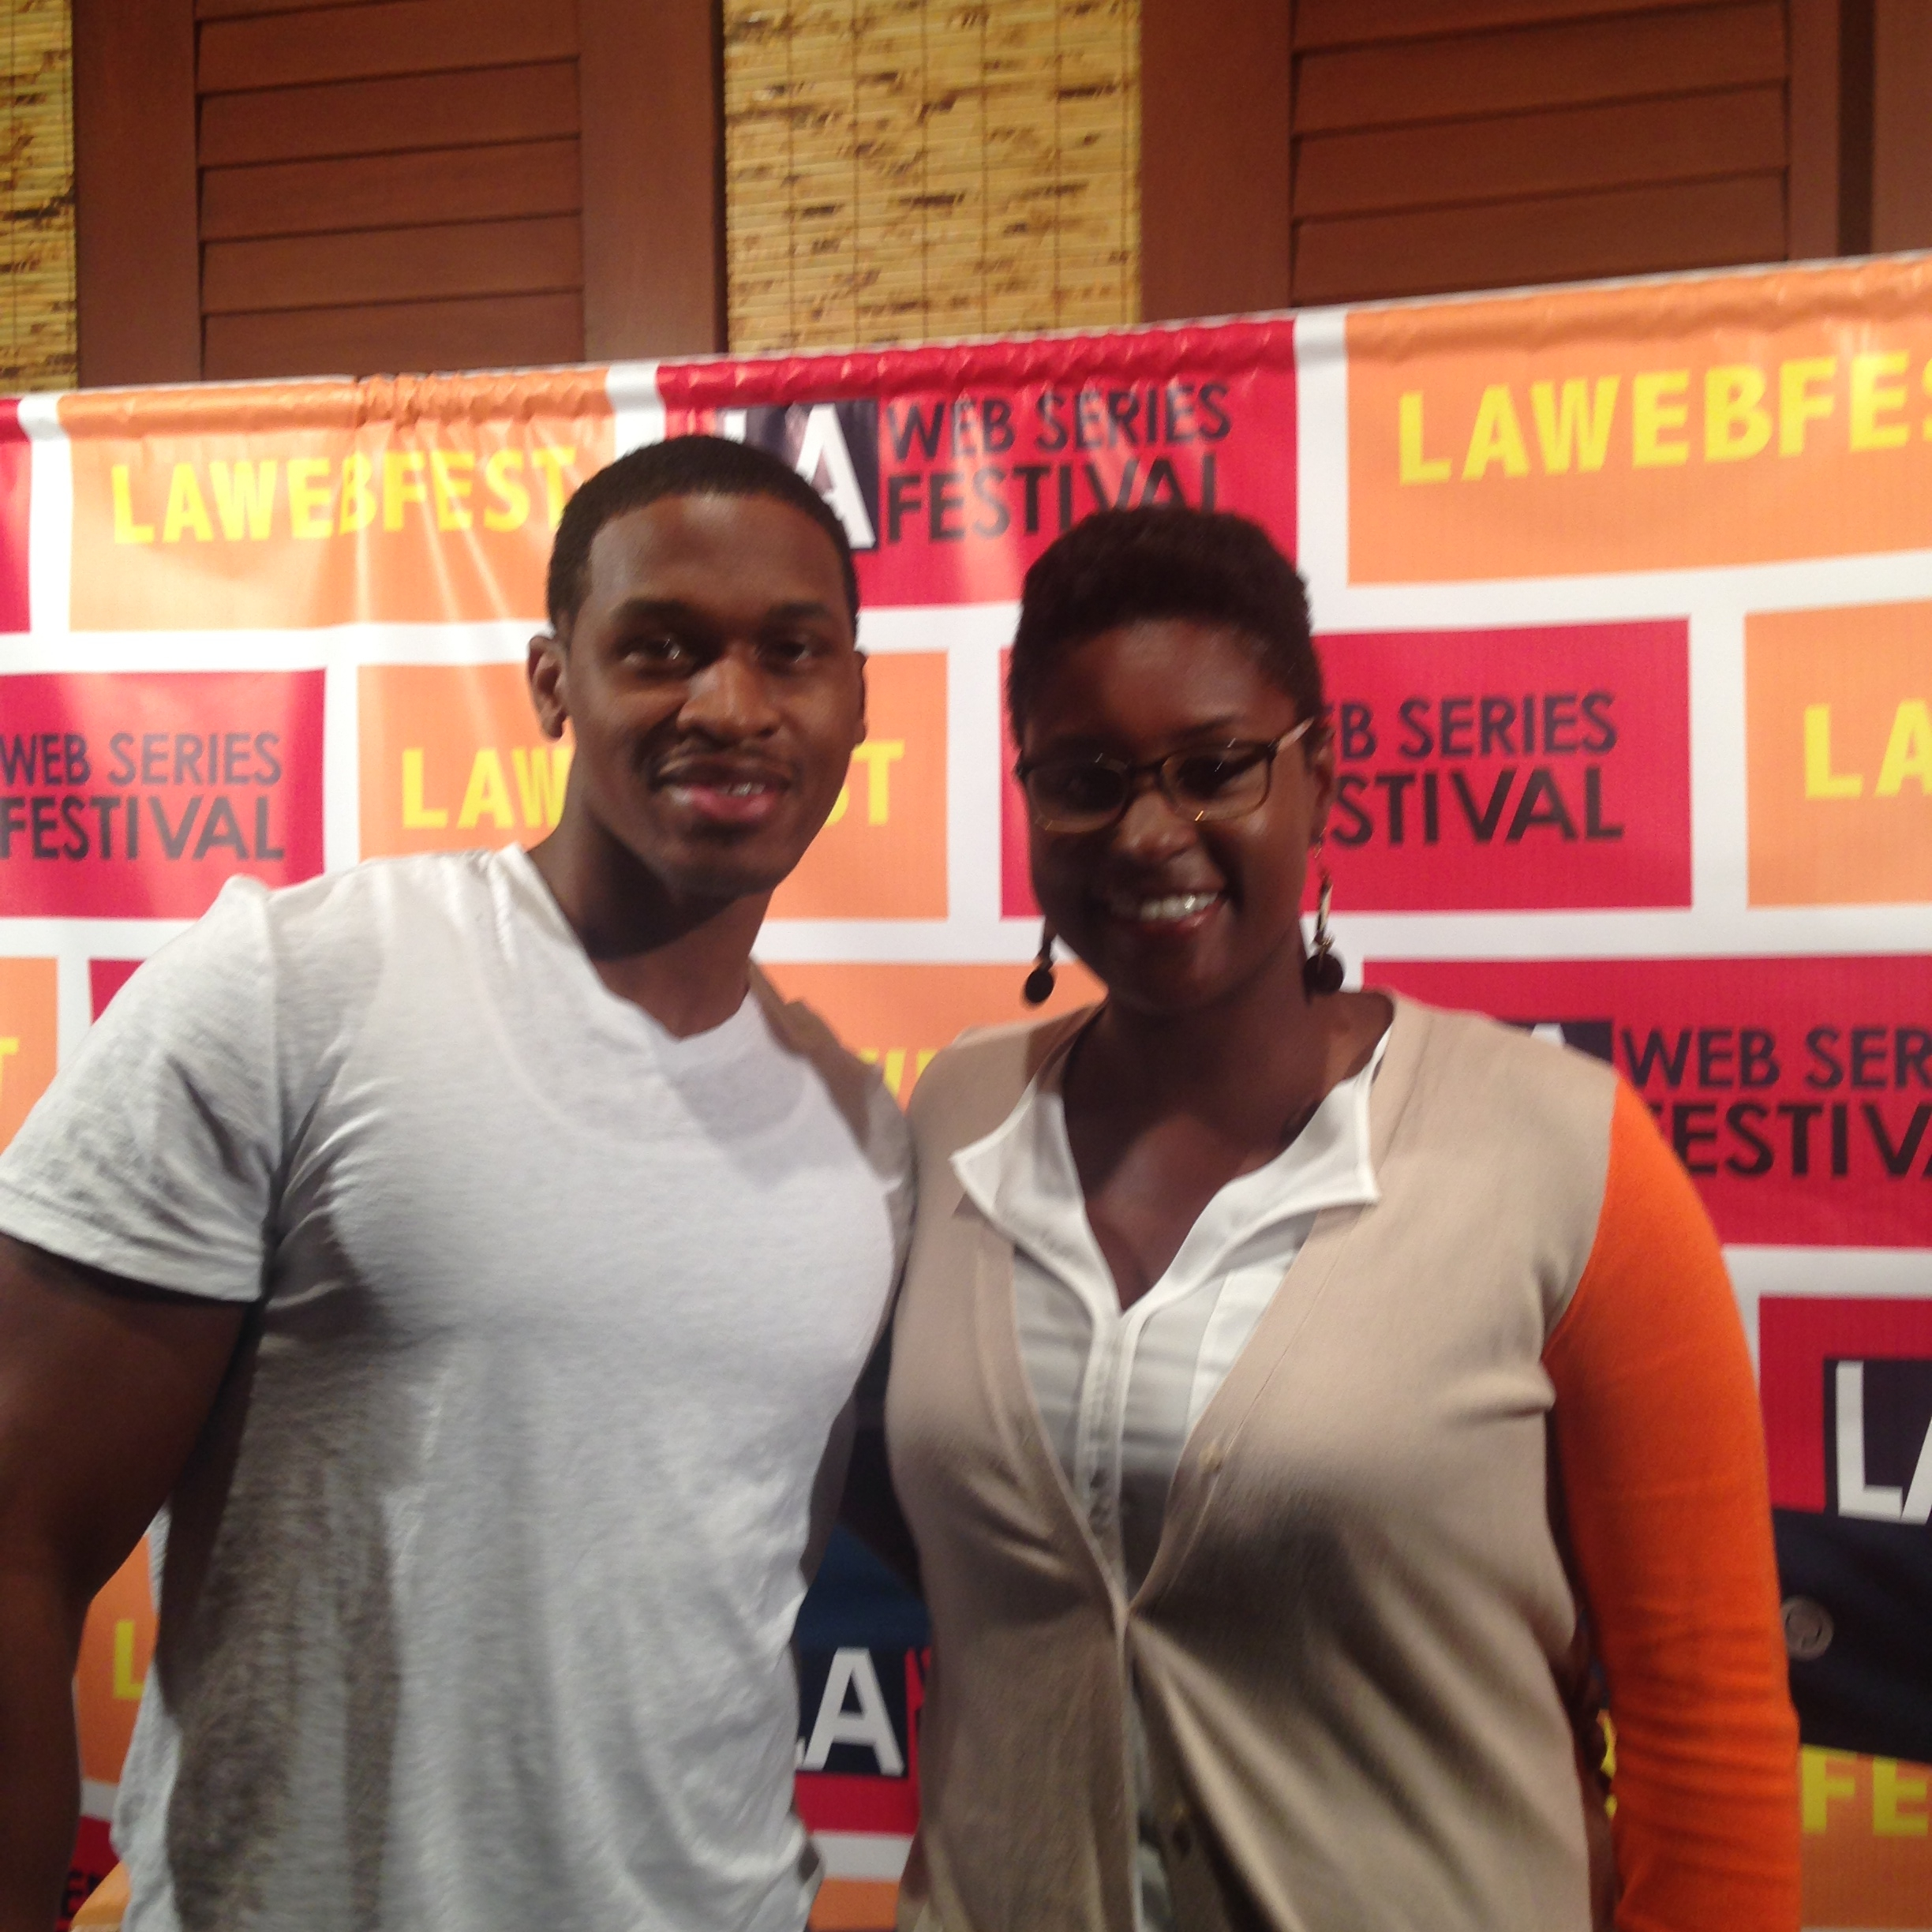 Kyree Terrell with Issa Rae (Creator of Awkward Black Girl) at LA Fest